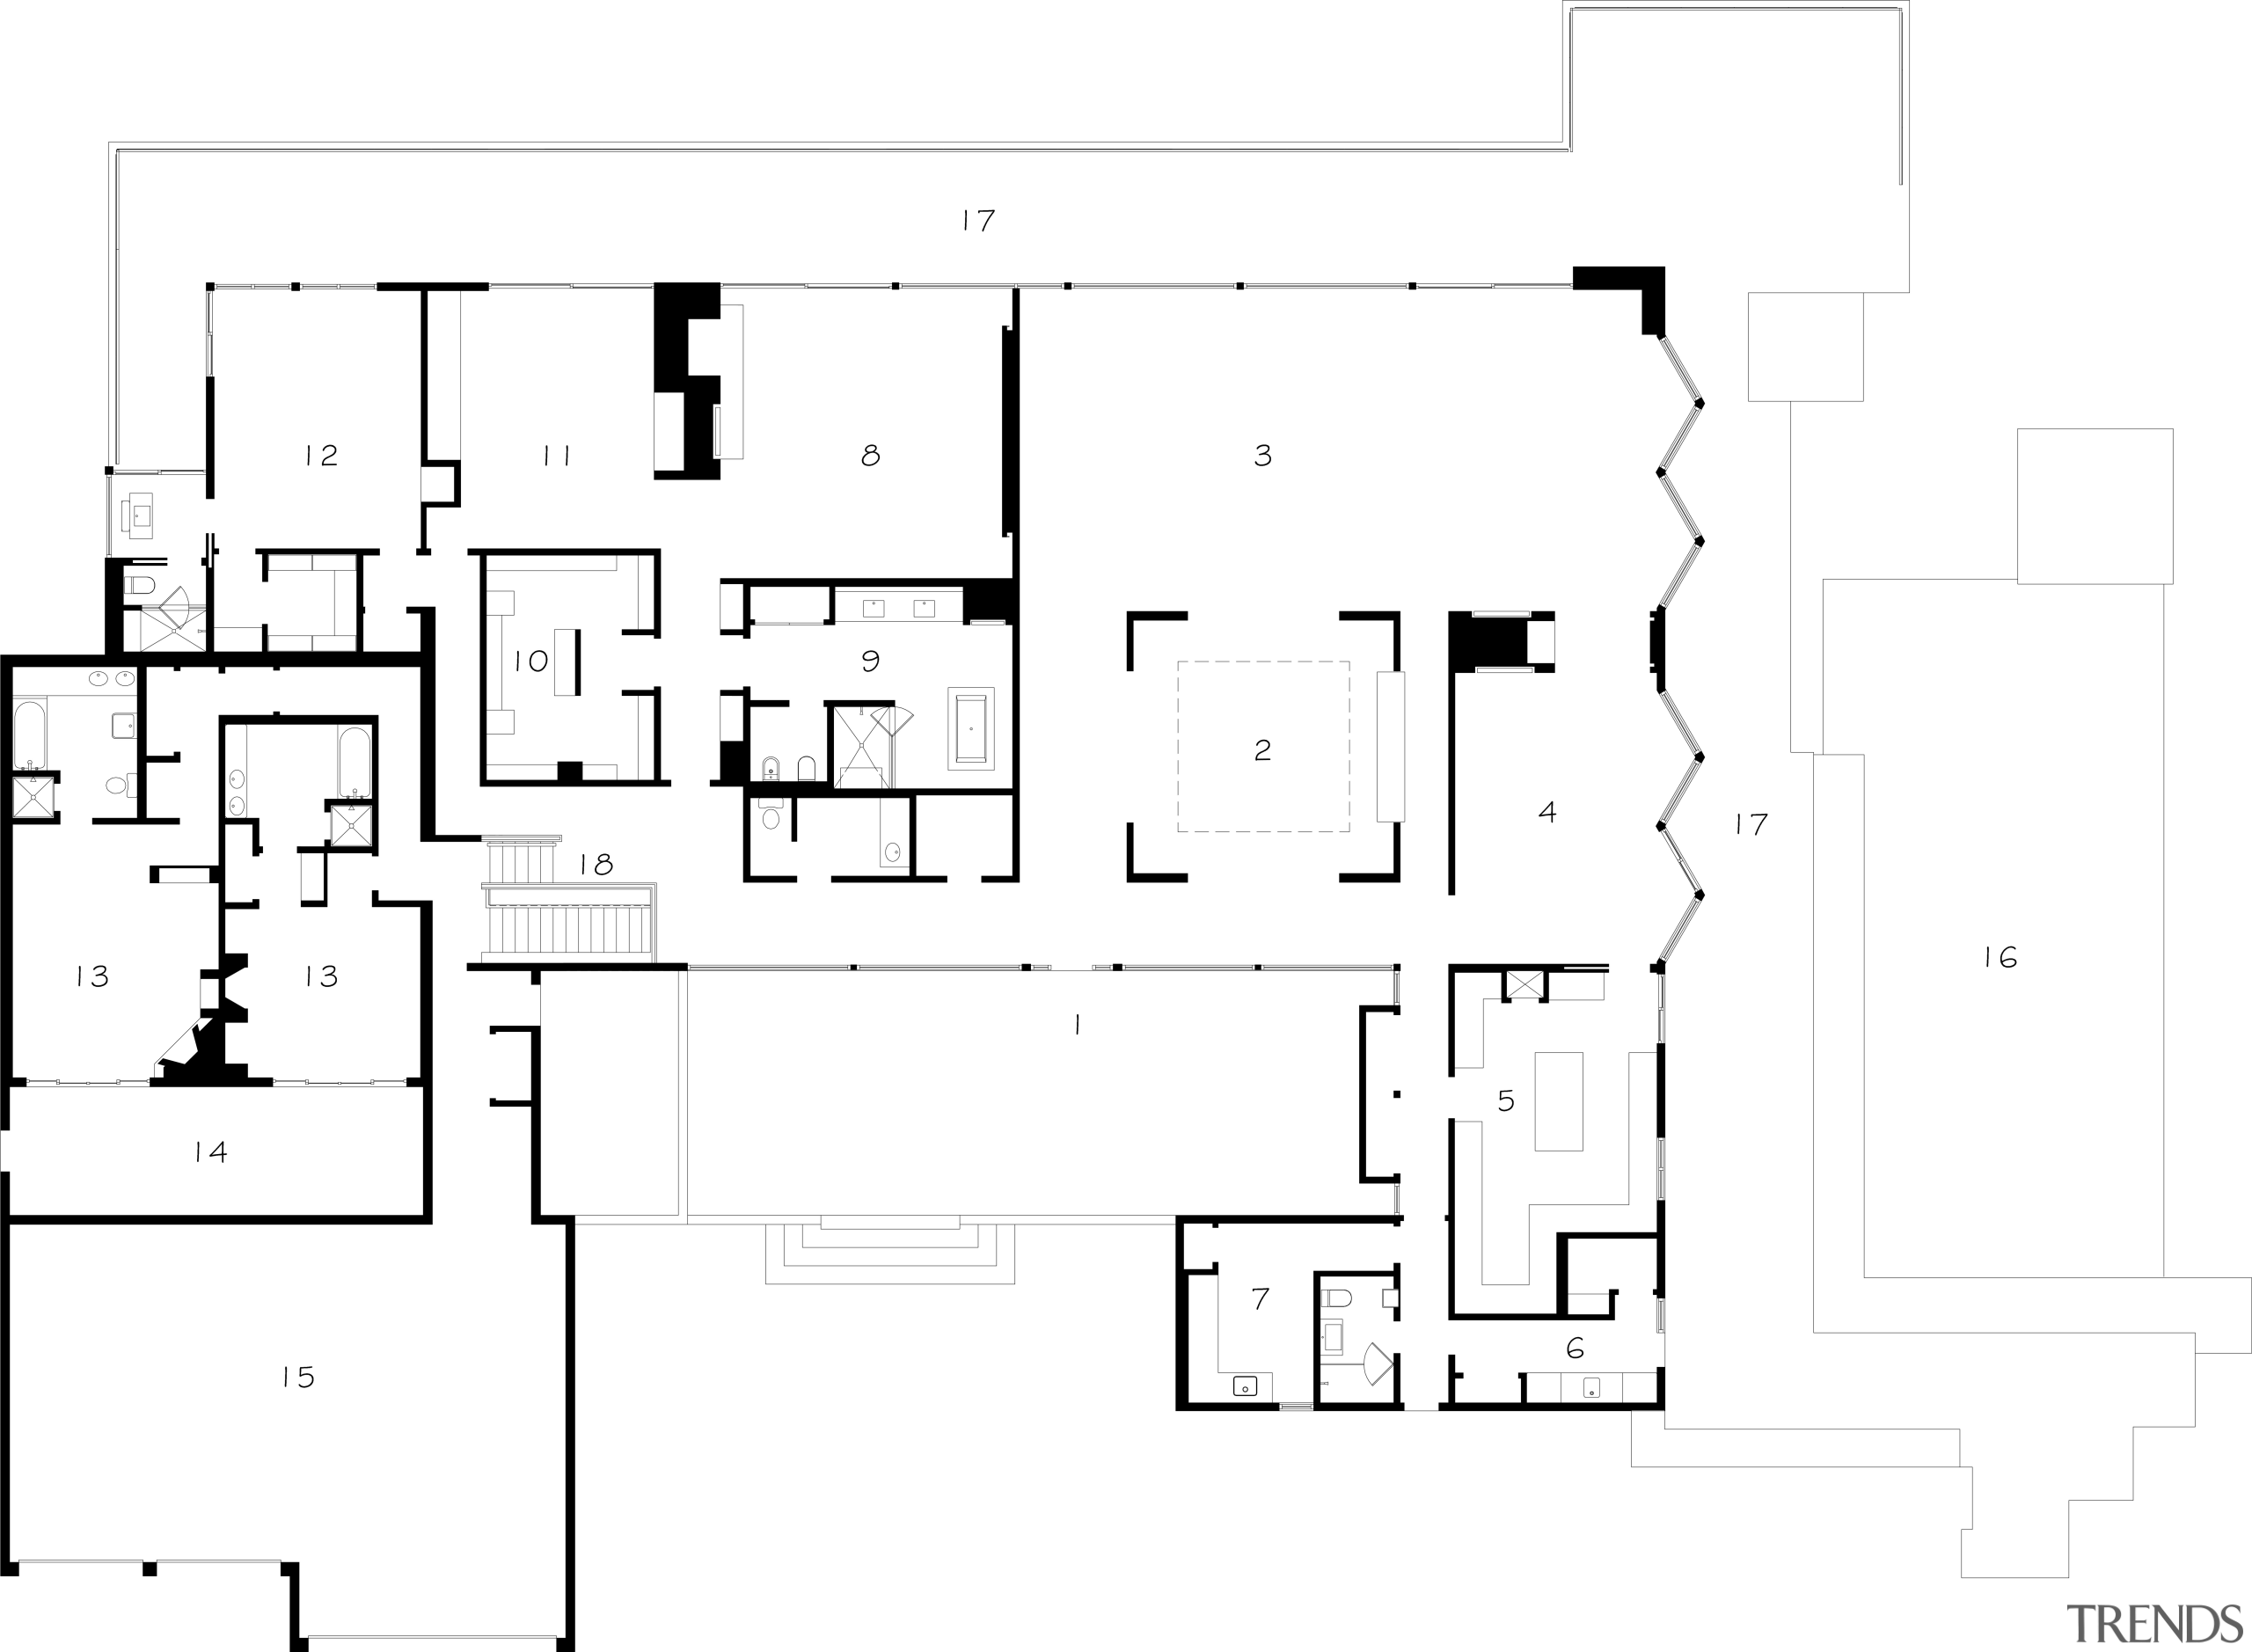 Floor plan of a 1970's house that was architecture, area, black and white, design, diagram, drawing, floor plan, font, line, plan, product design, schematic, square, text, white